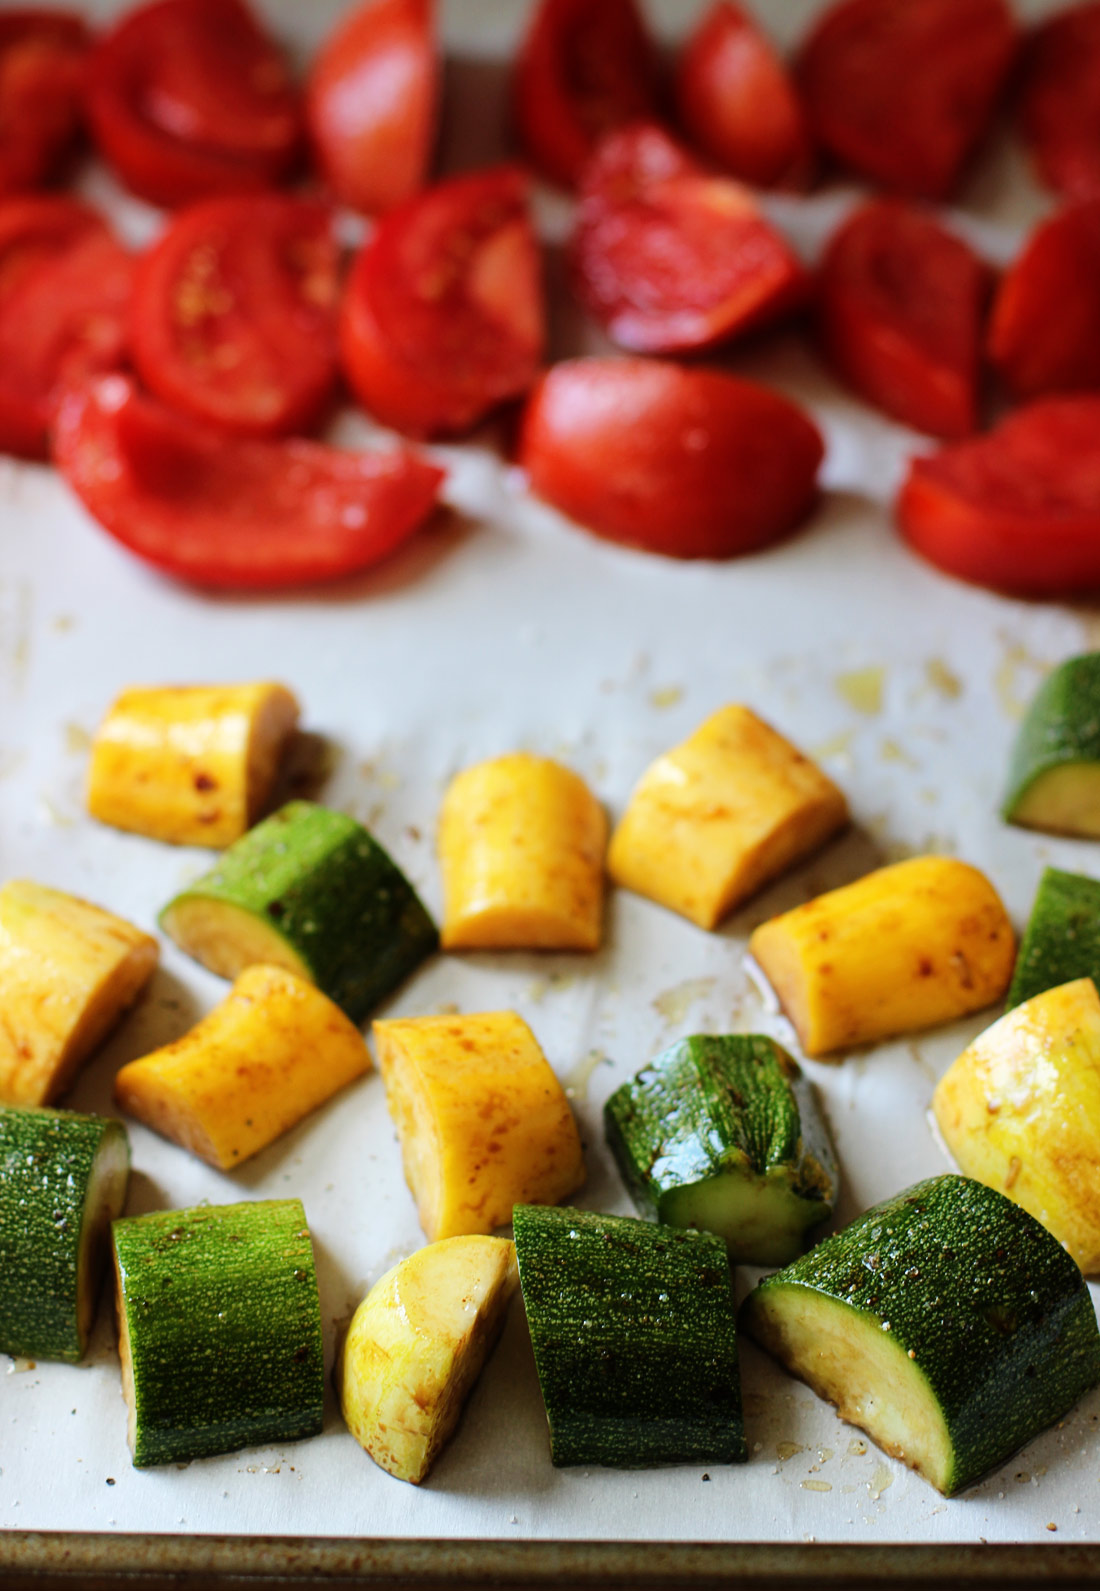 Roasted-Tomato-&-Summer-Squash-Pasta-ingredients